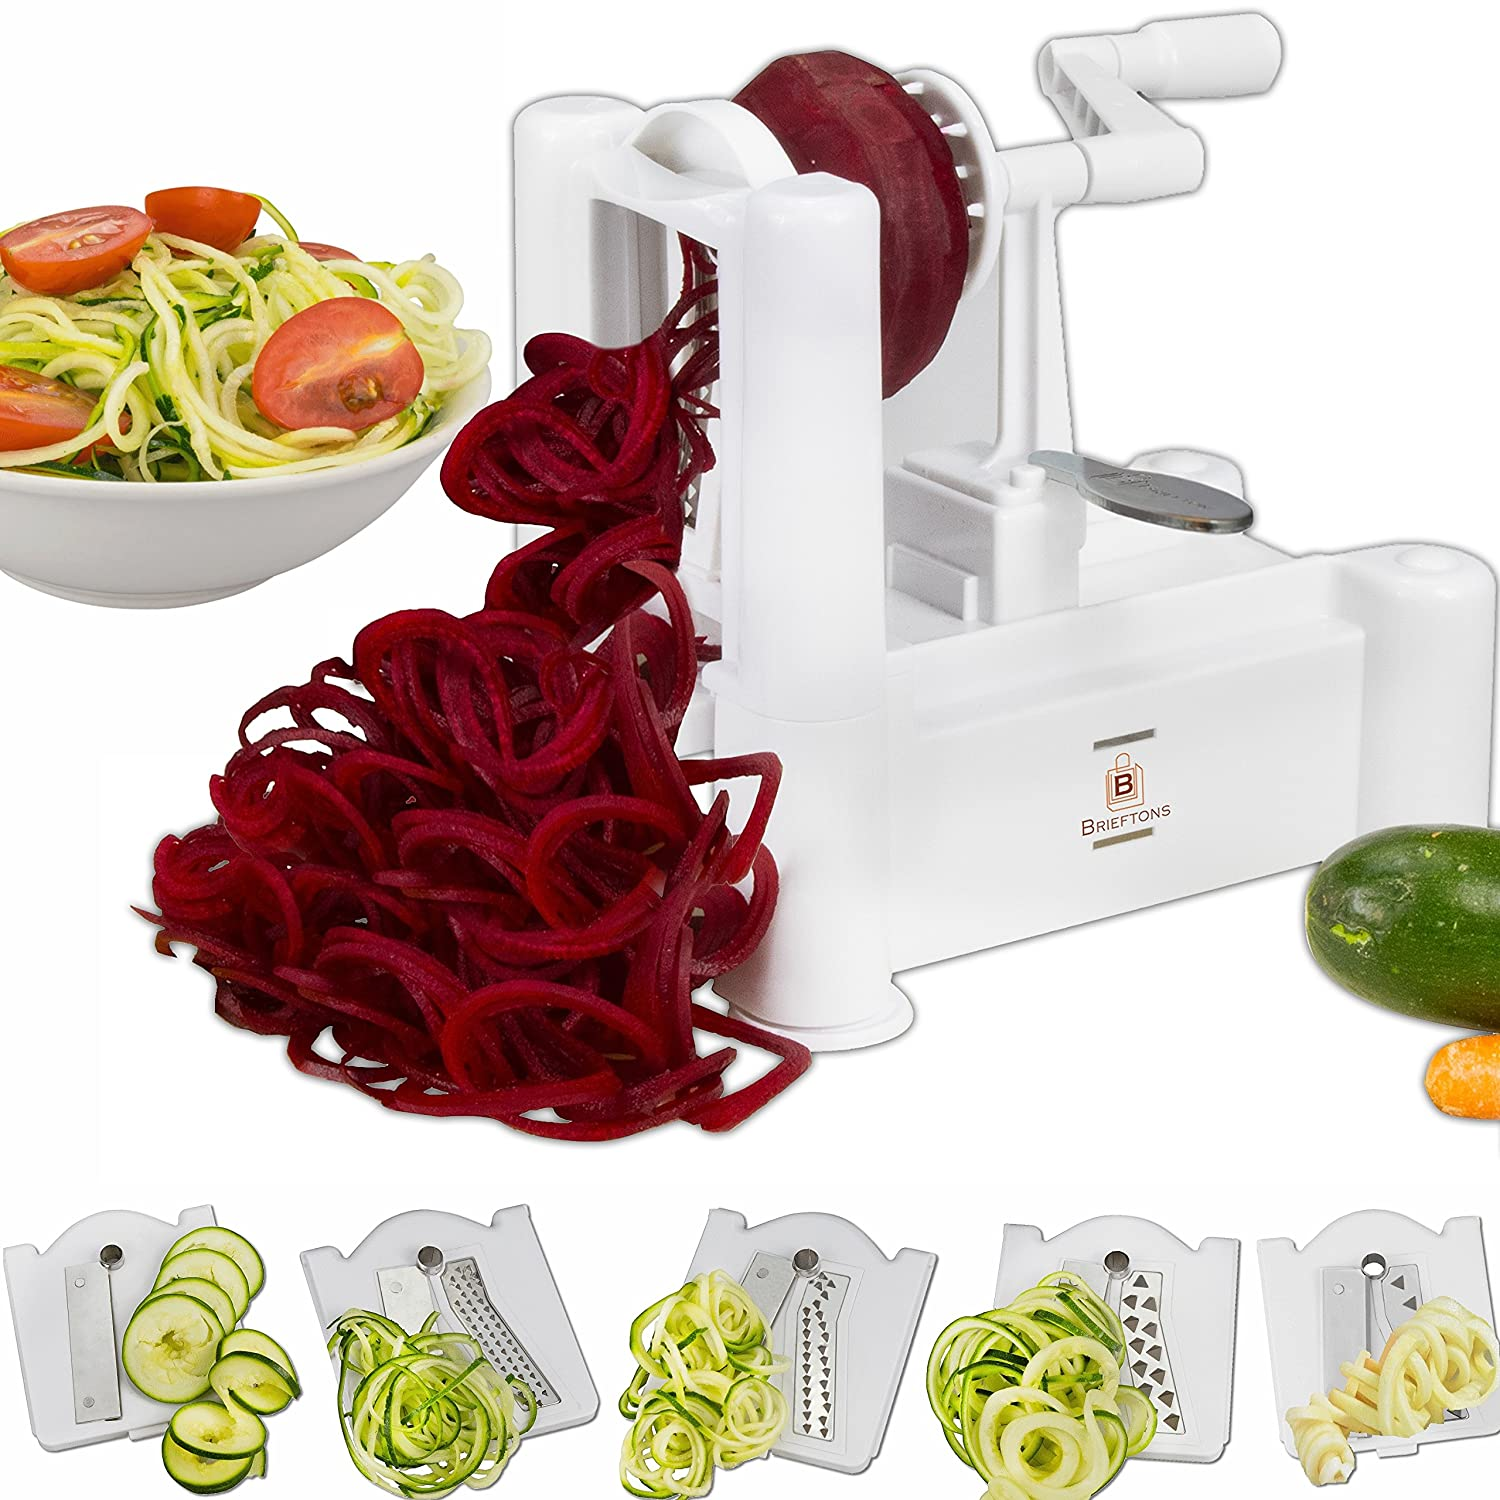 Amazon mandolines slicers home kitchen egg slicers more brieftons 5 blade spiralizer classic strongest and heaviest duty vegetable fandeluxe Image collections